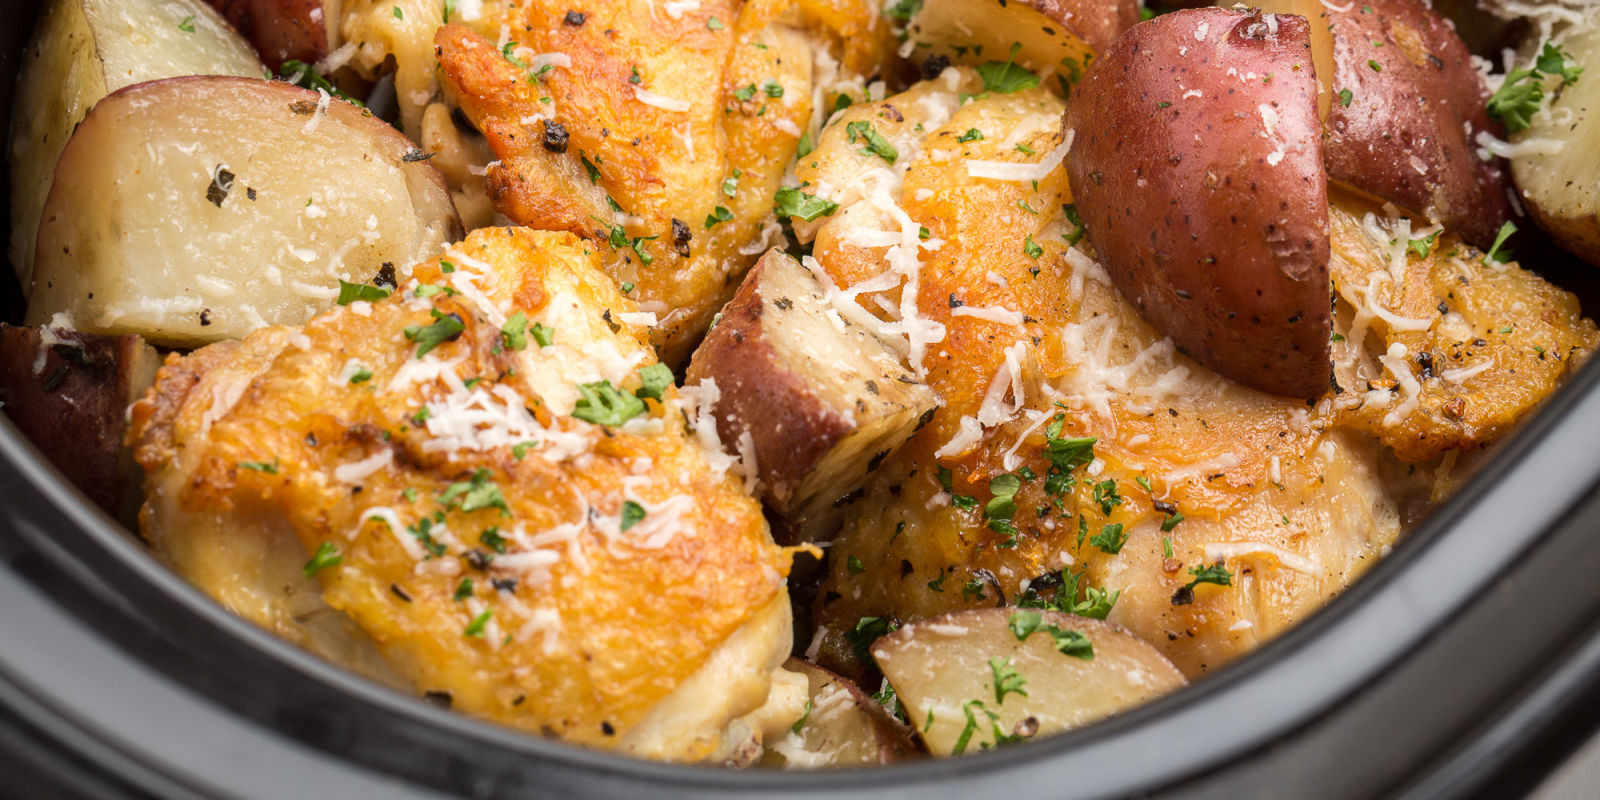 Easy Healthy Slow Cooker Chicken Recipes  Popular Slow Cooker Chicken Pinterest Slow Cooker Chicken